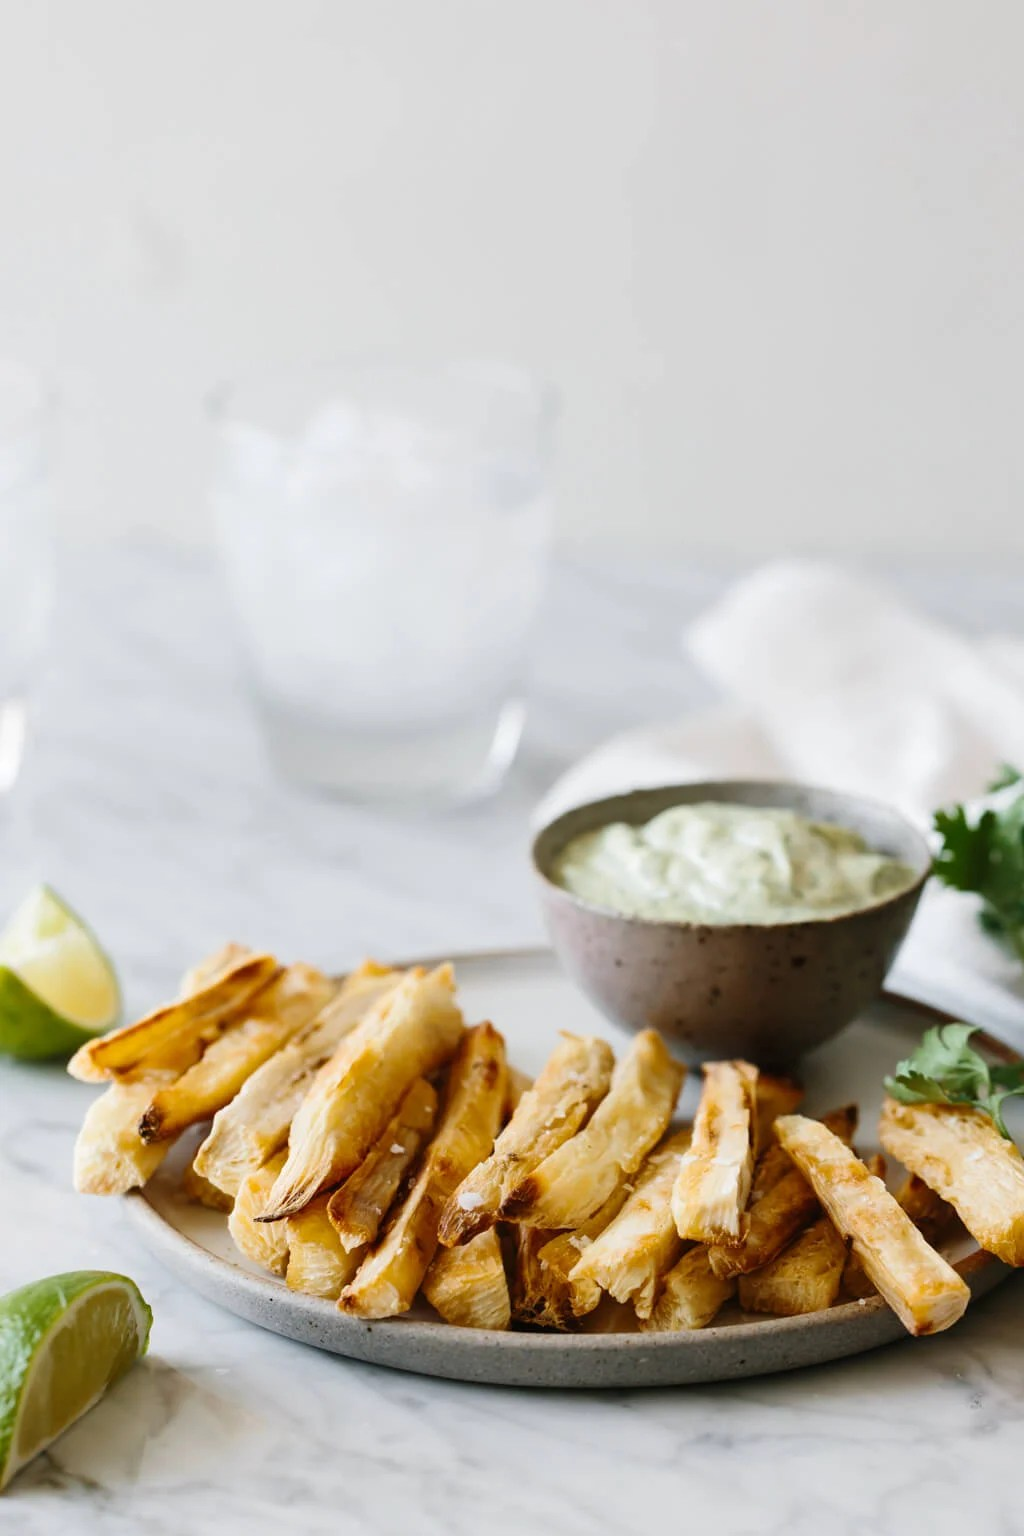 Baked yuca fries (also known as cassava fries) are golden and crispy on the outside and soft on the inside. They're a healthier way to make yuca fries and I'm serving them up with cilantro lime mayonnaise.